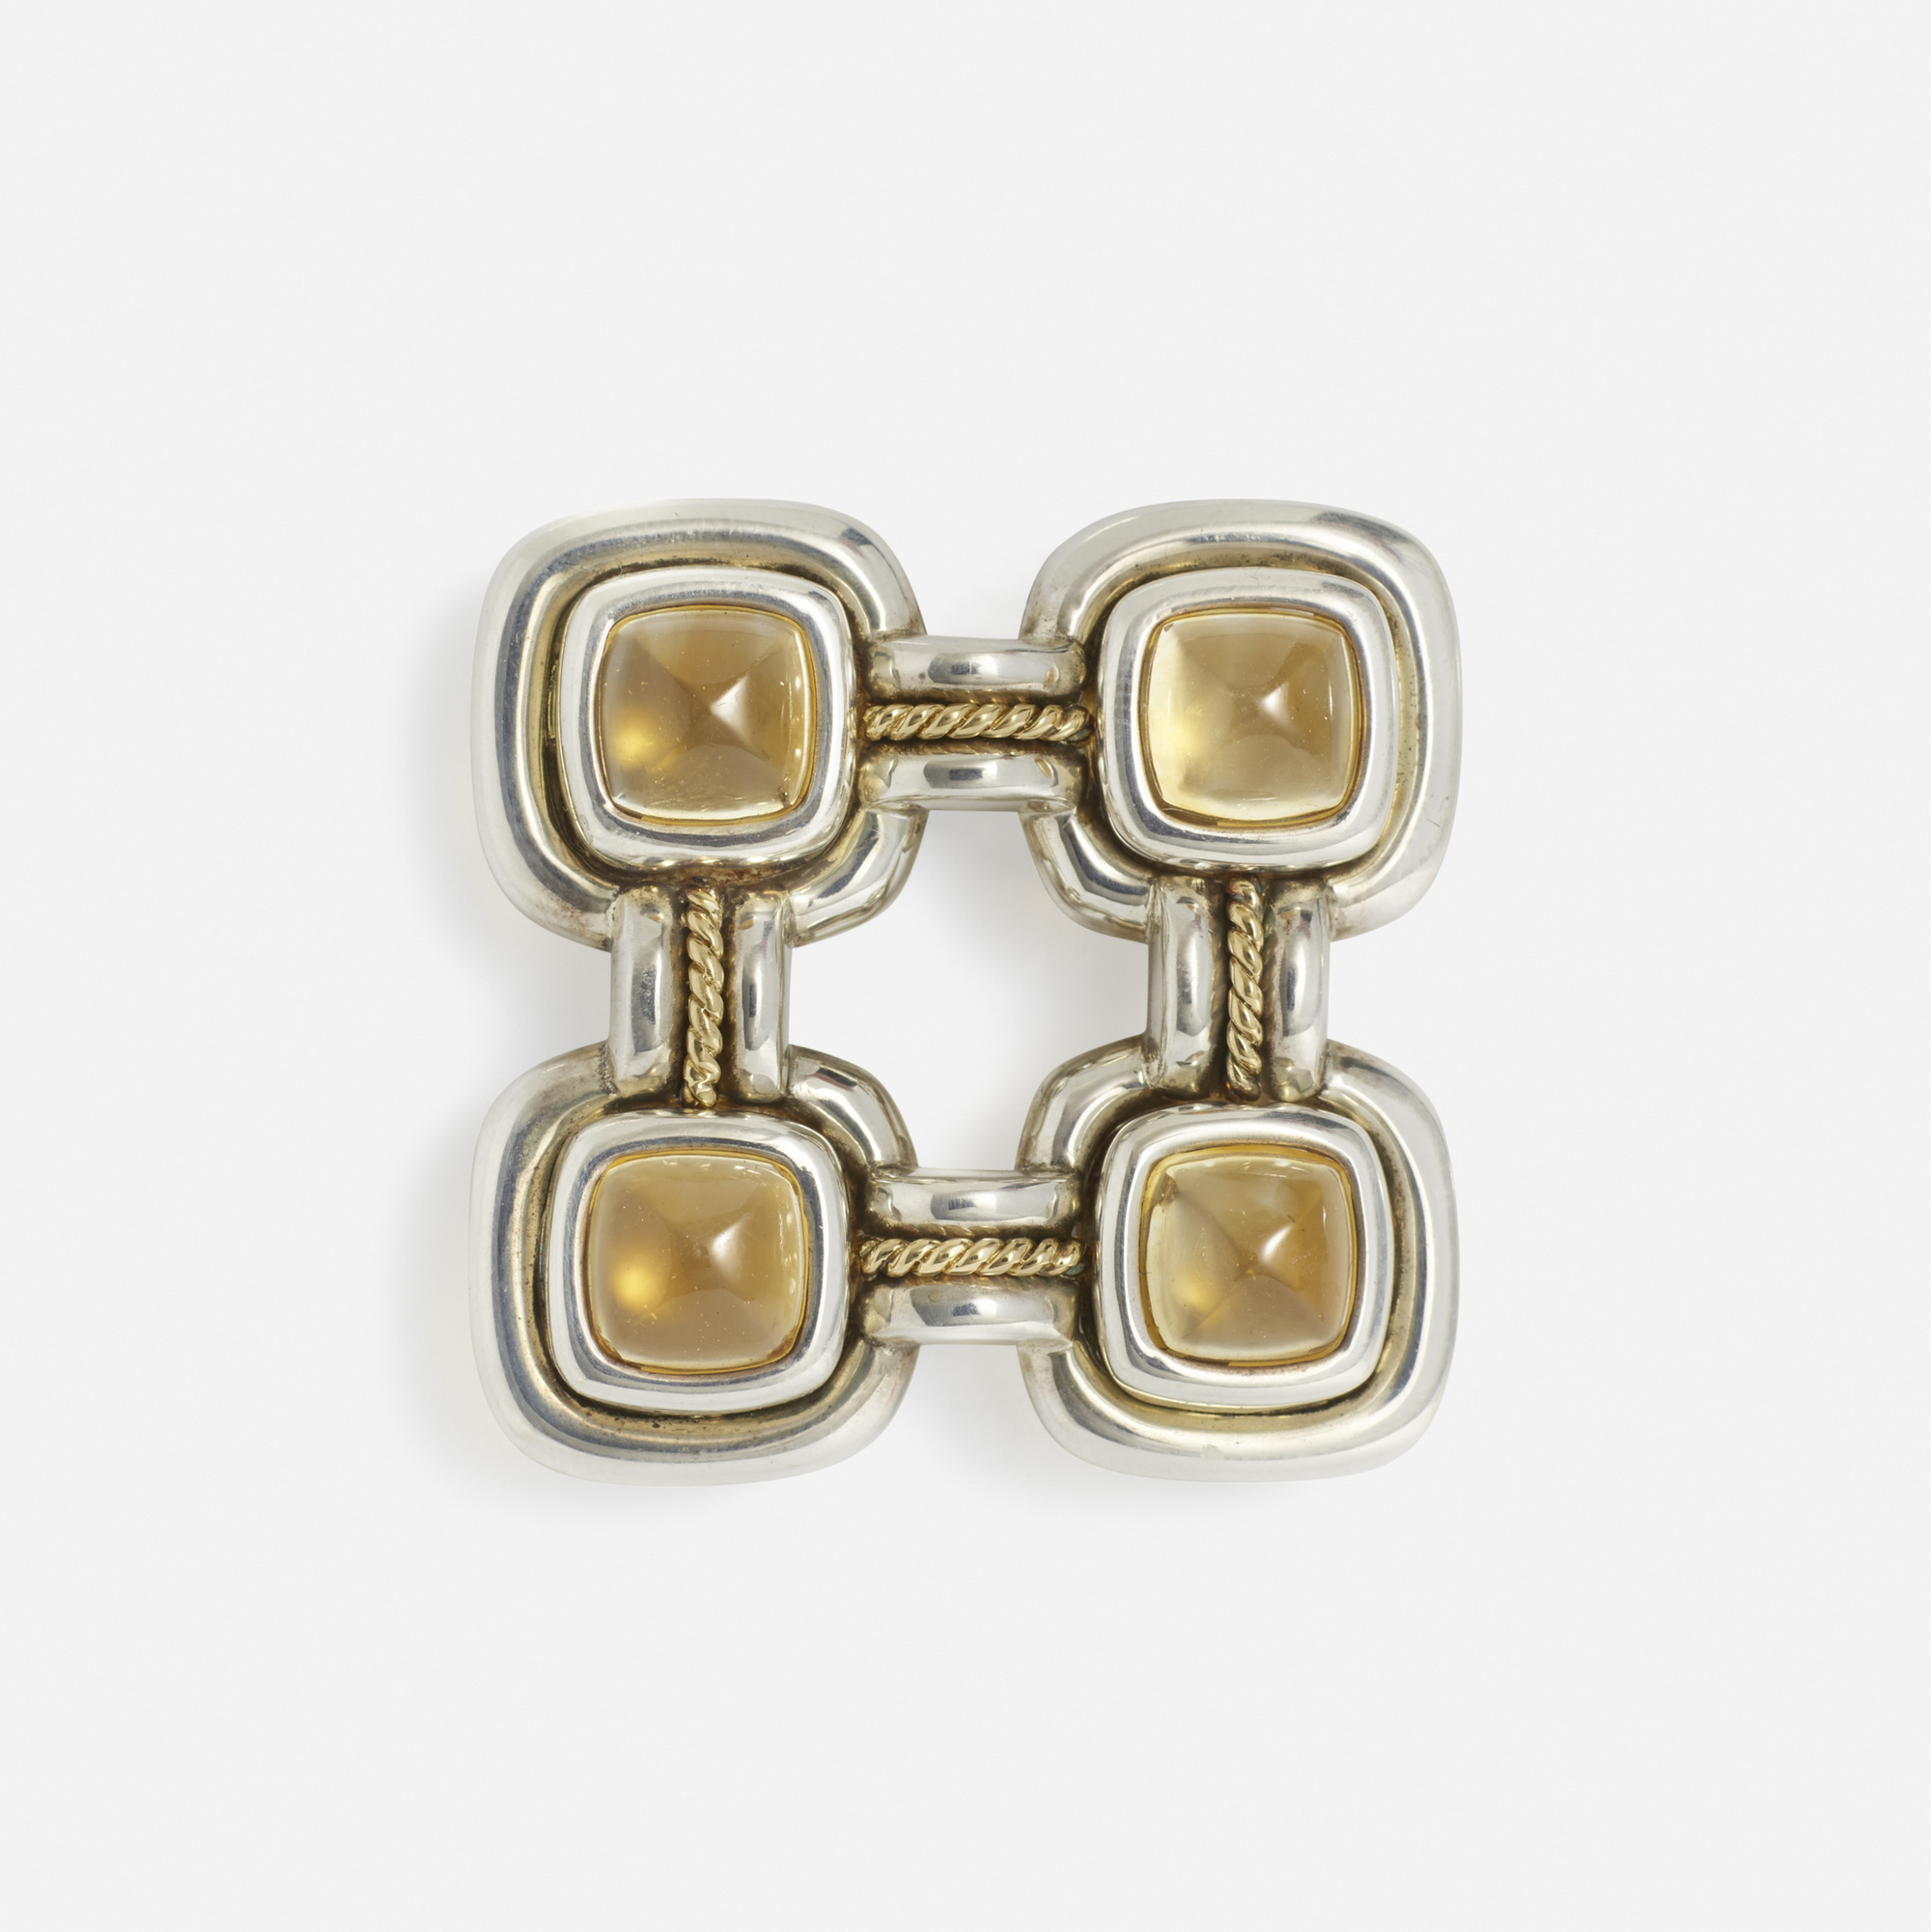 268: Tiffany & Co. / A sterling silver, gold and citrine brooch (1 of 1)